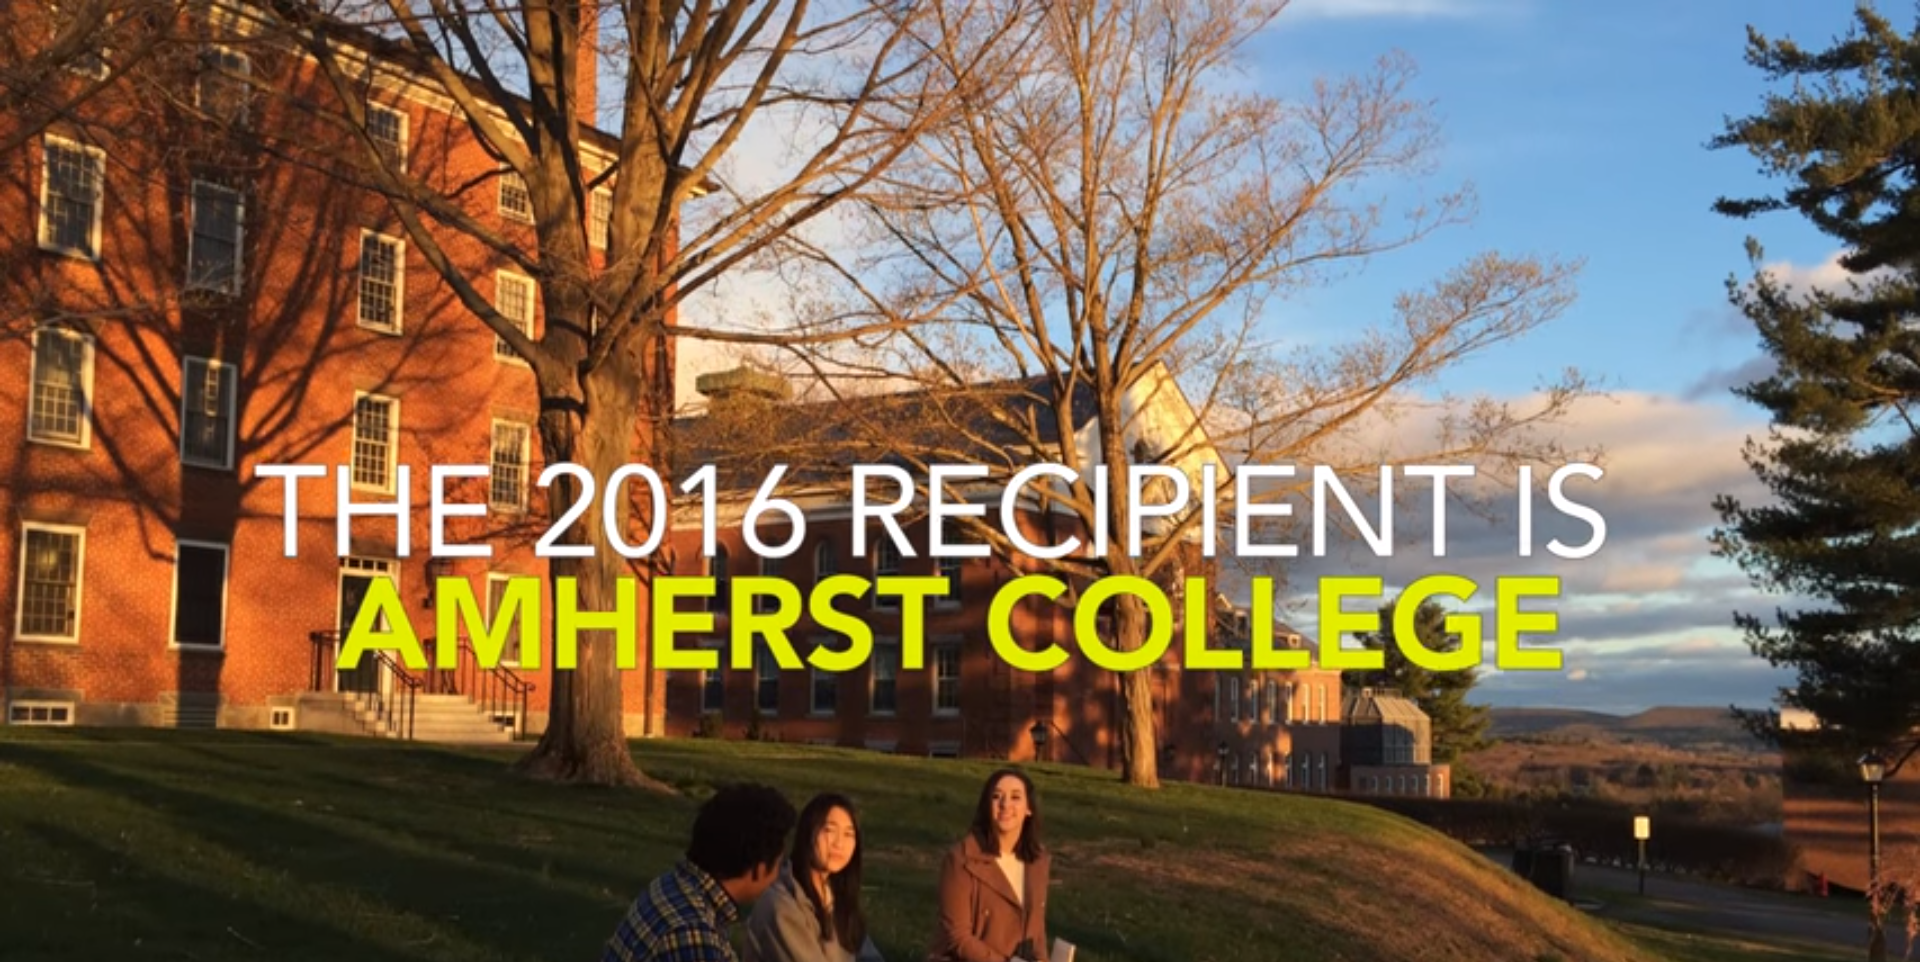 Cooke-Prize-2016-amherst-college.png